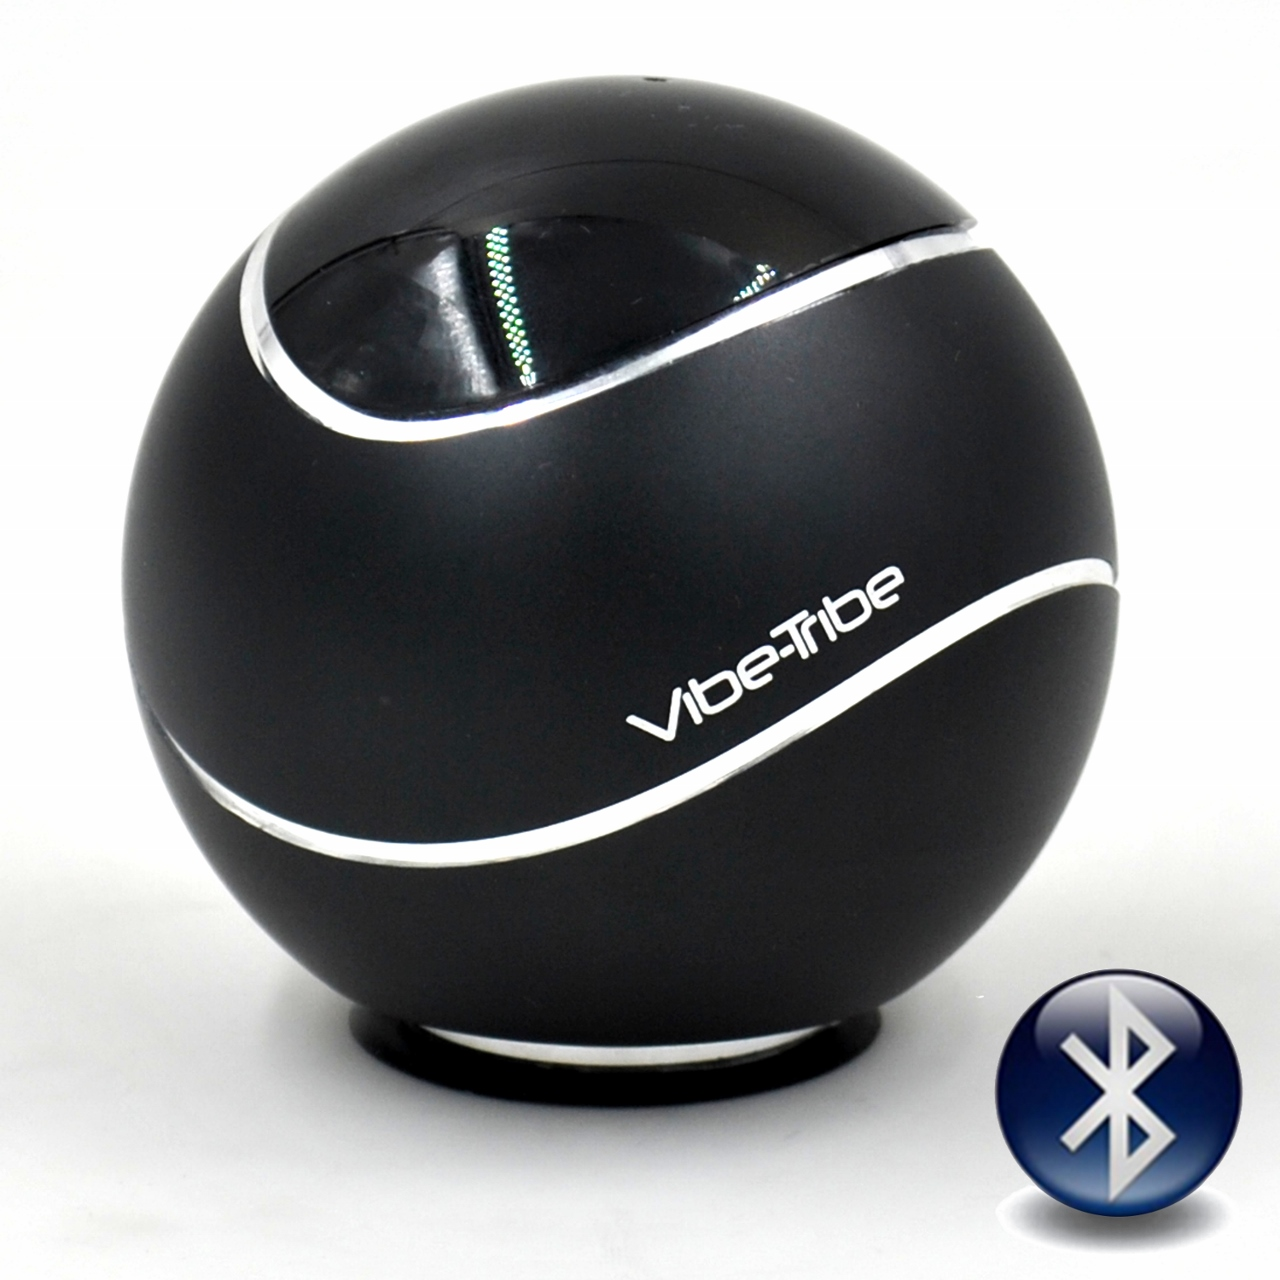 Orbit vibe-tribe bluetooth vibration resonance speaker black 02 1280x1280